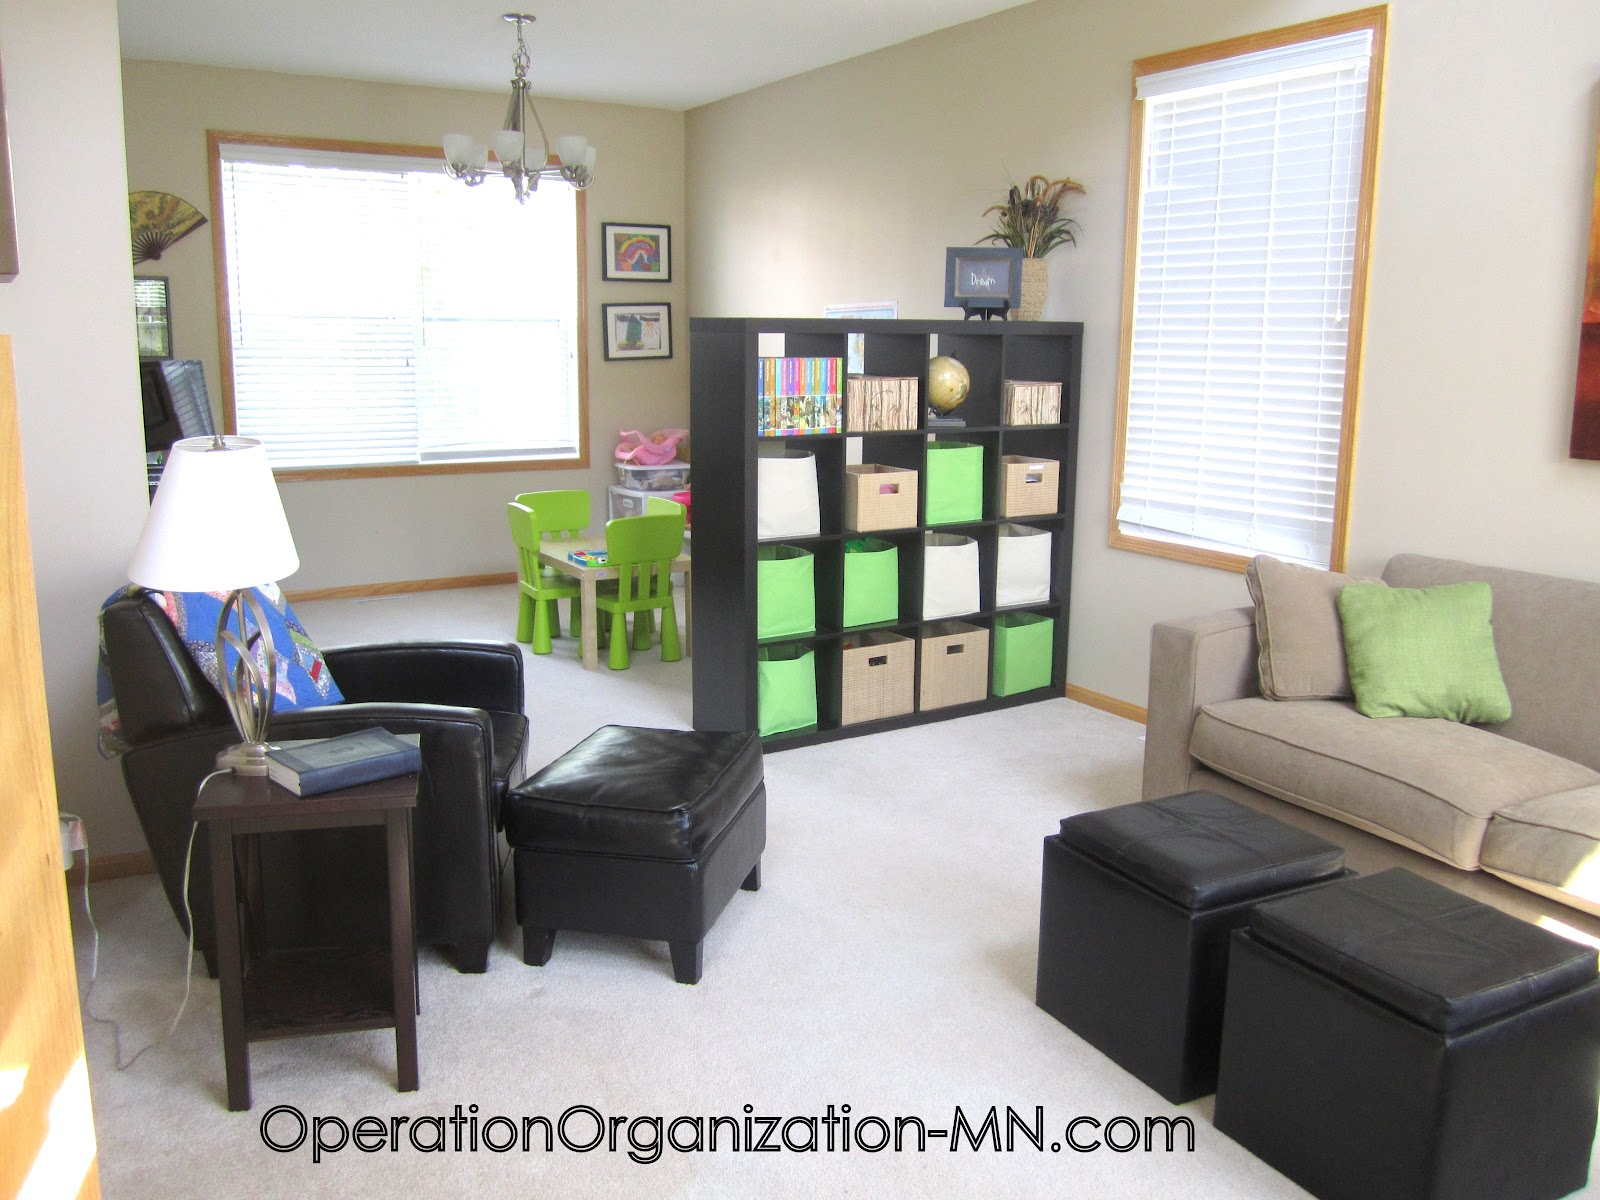 Organizing A Living Room Relaxing Colors Operation Organization Professional Organizer Peachtree City